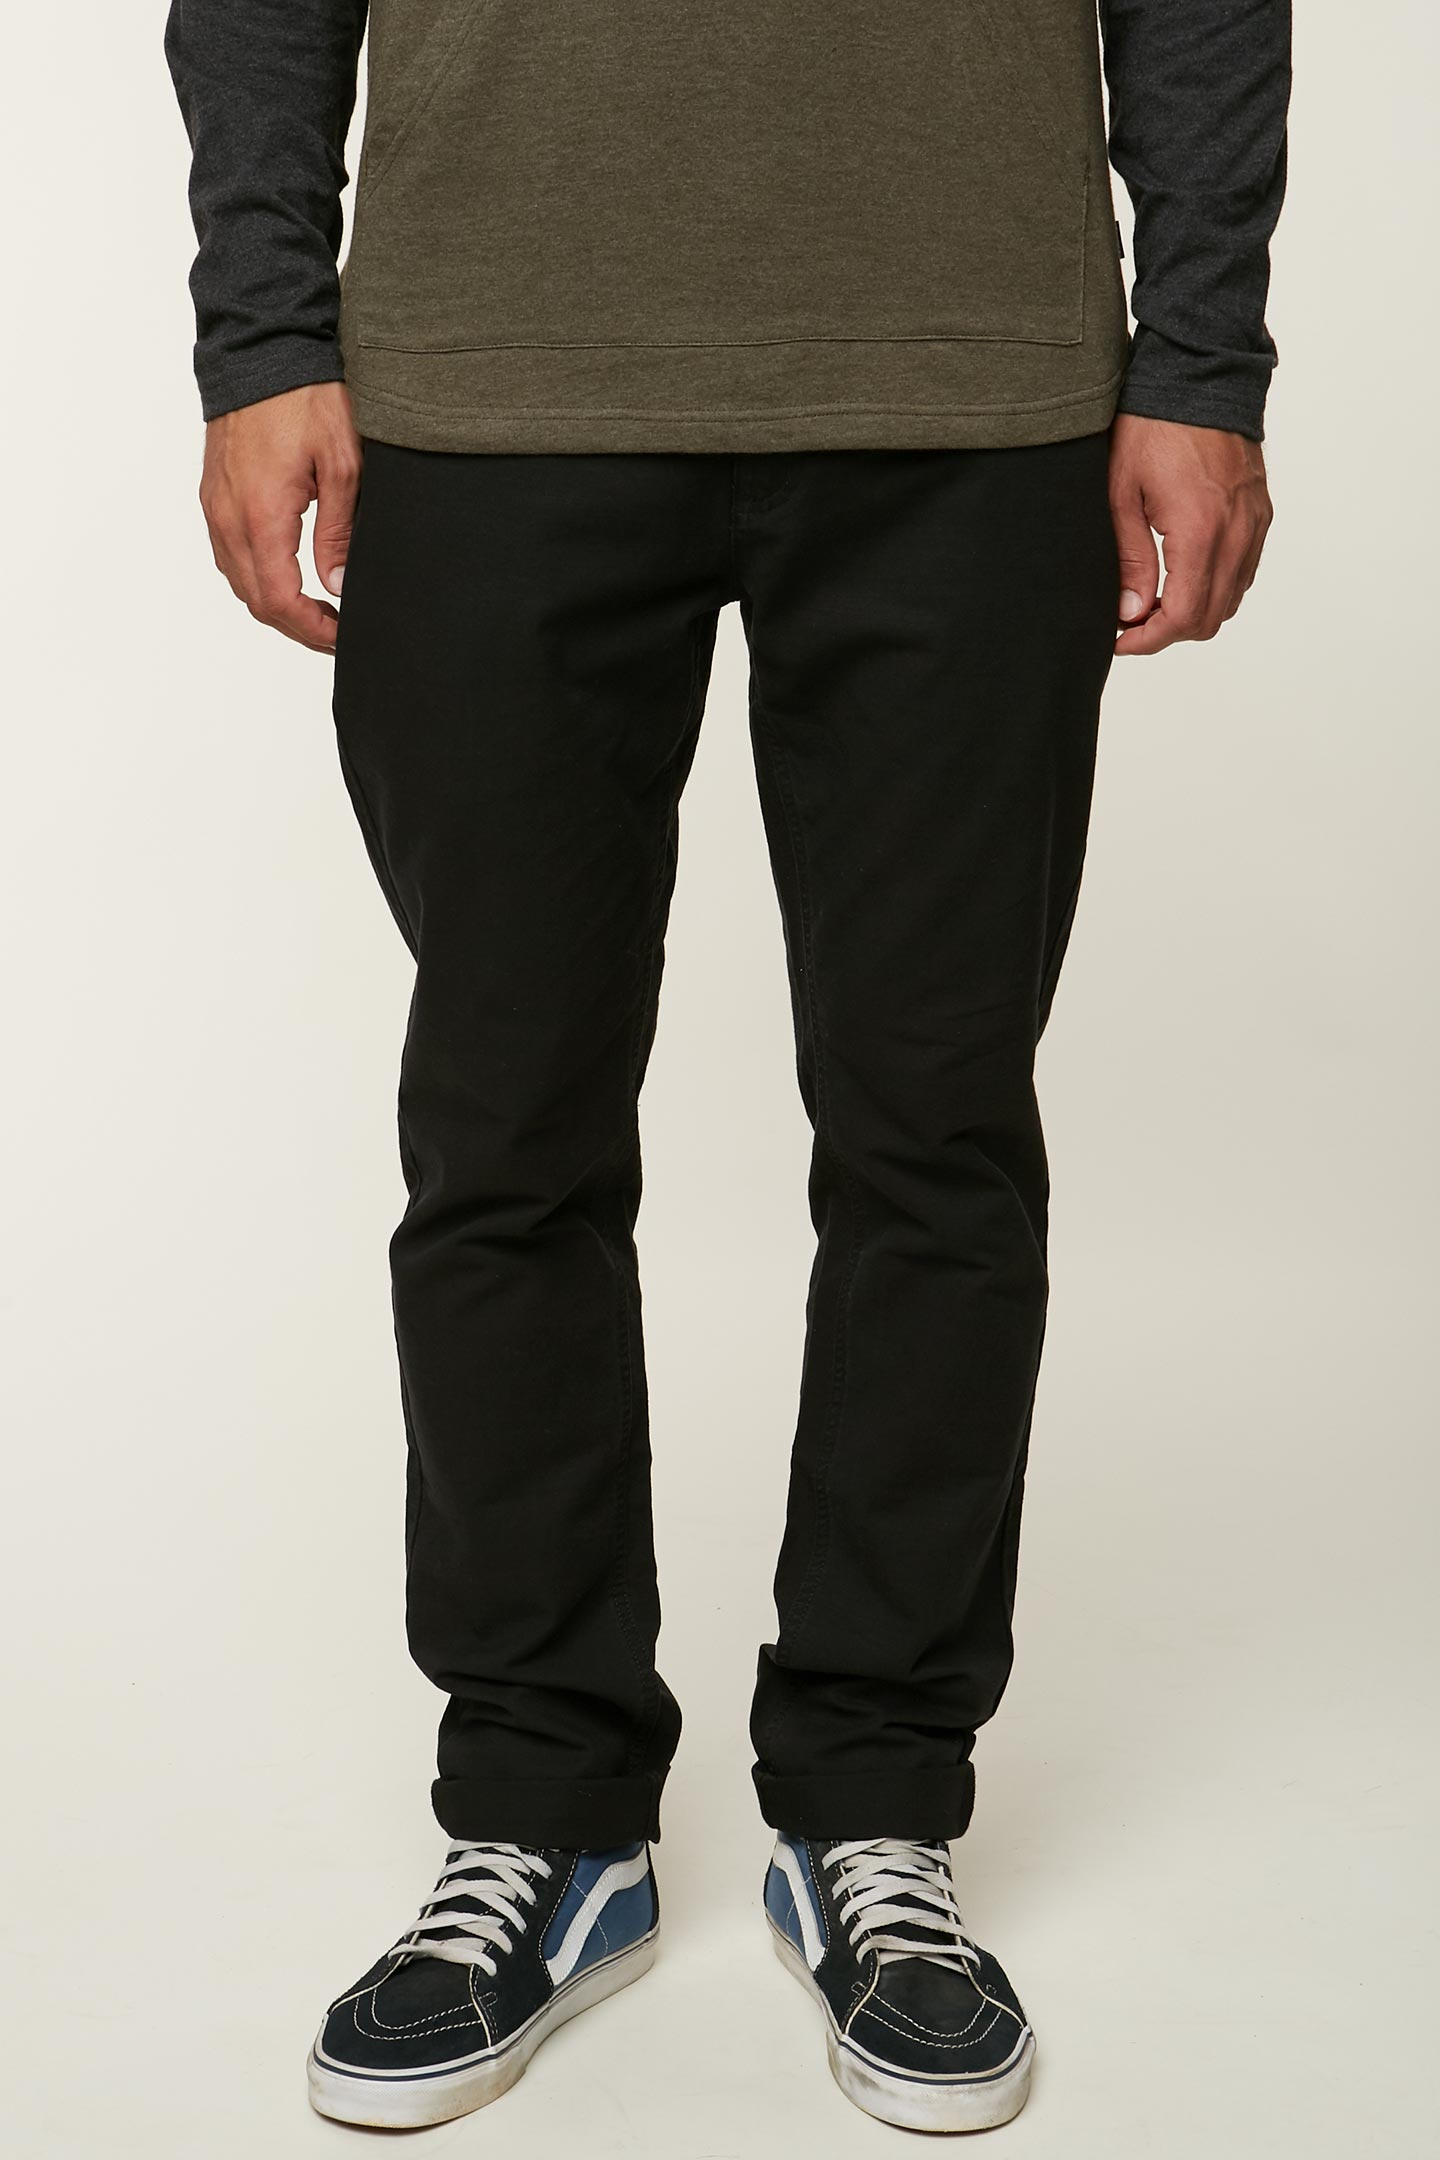 472979d554bc JAY STRETCH MODERN FIT CHINO PANTS. Image. Image. Image. Image. Image